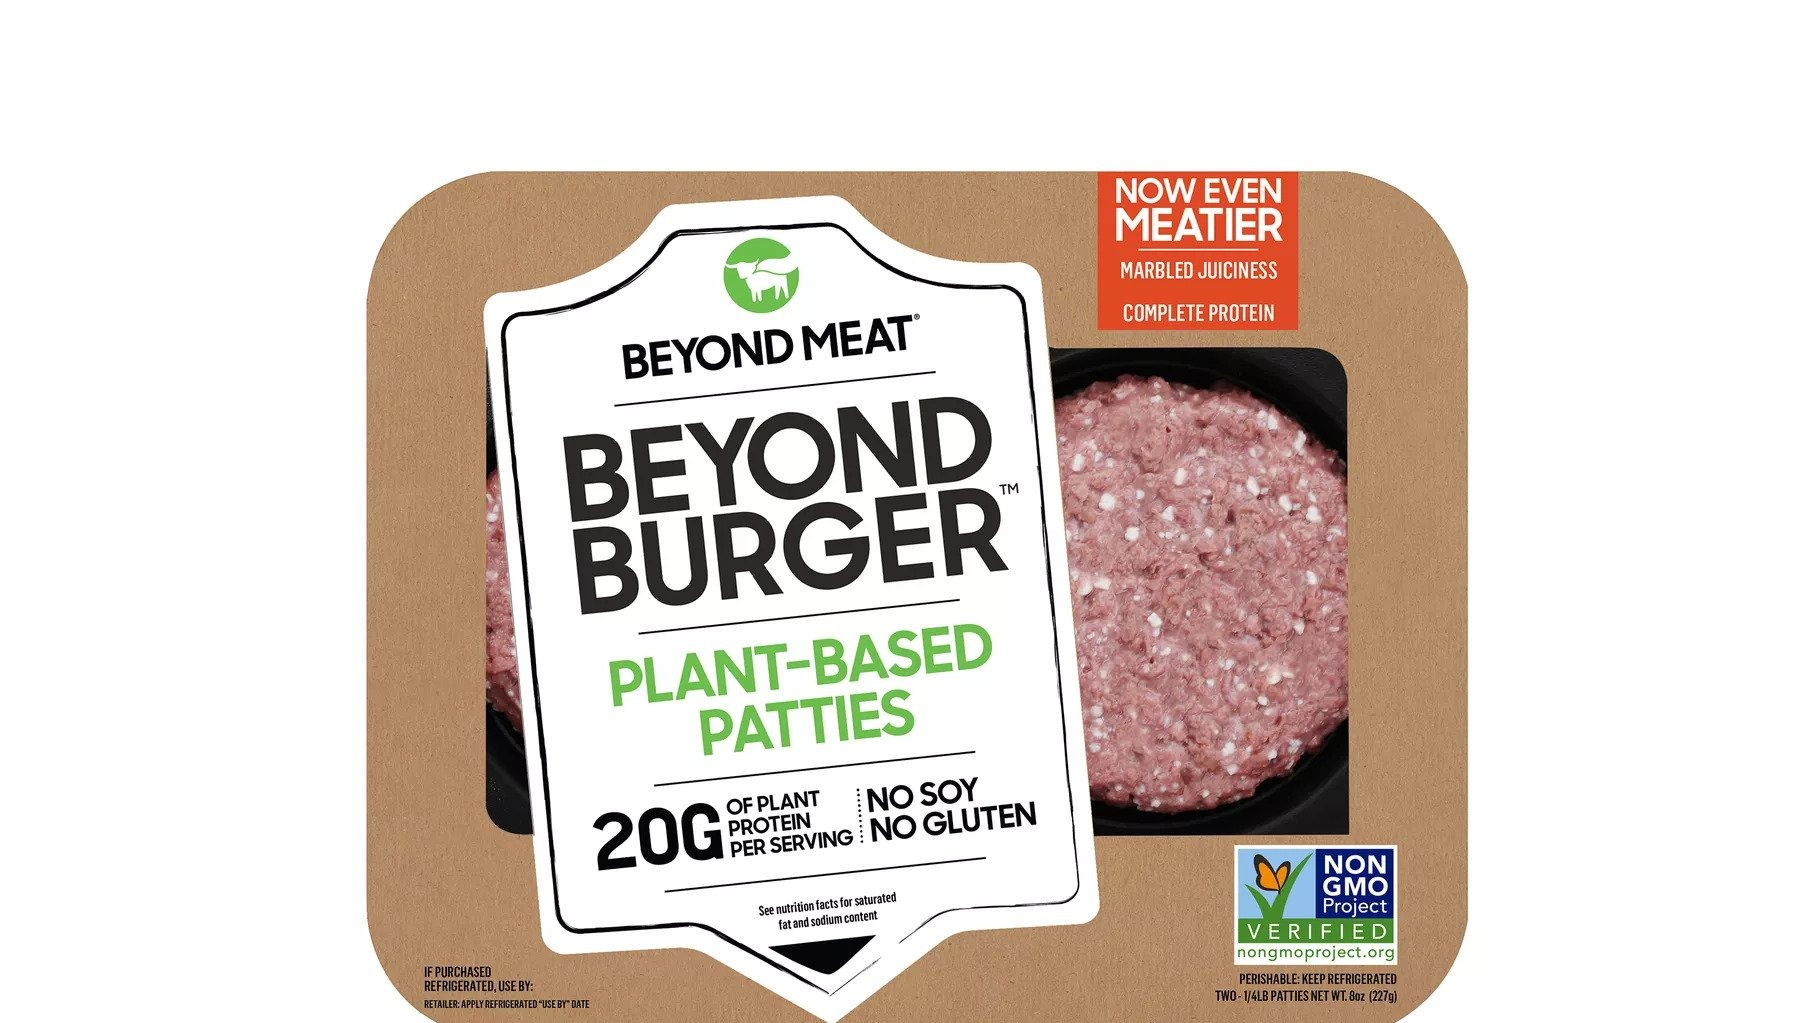 Beyond Meat Upgrades Its Burger With Better Marbling And Complete Protein